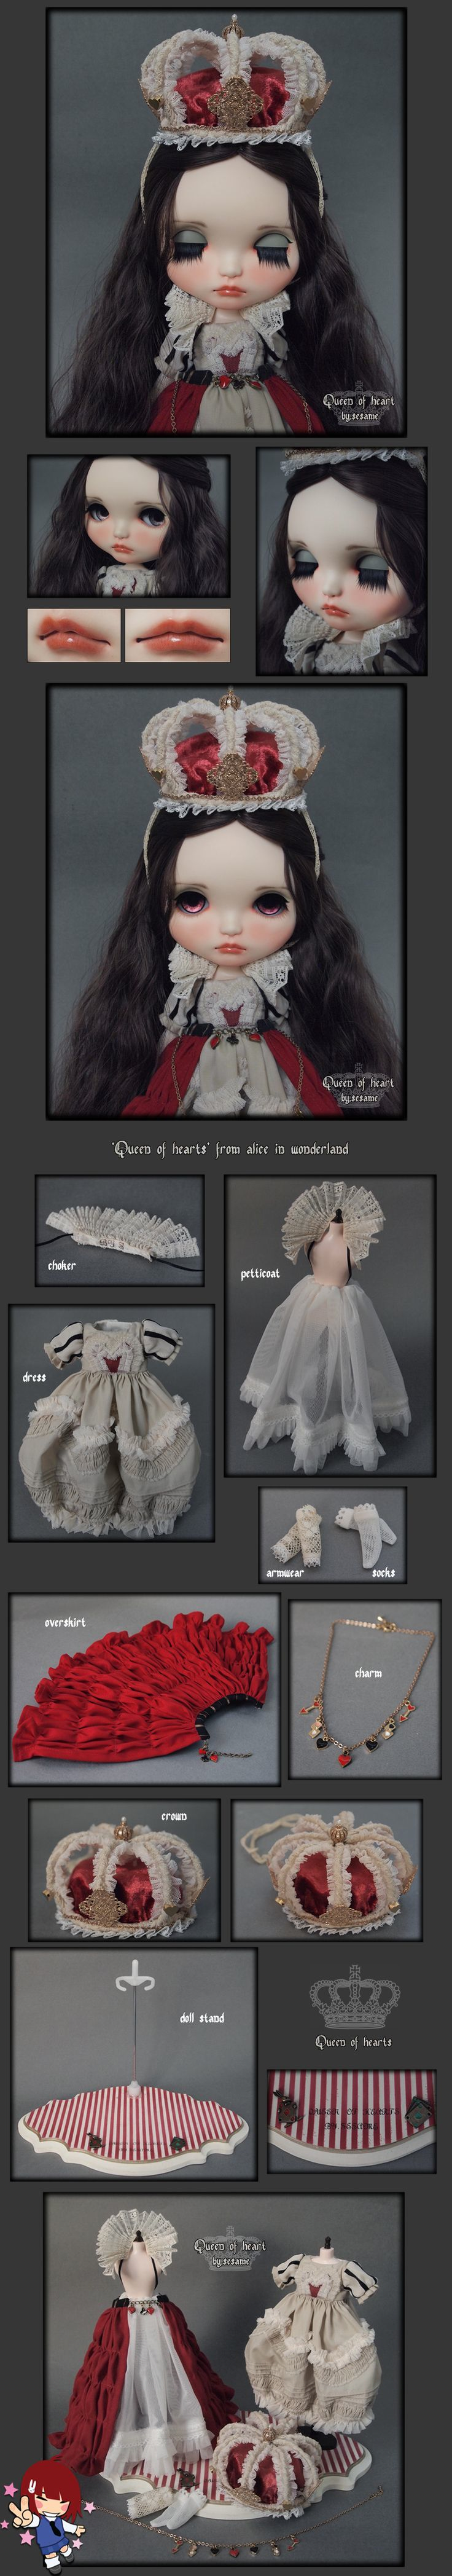 Some Blythe dolls are just to die for, and this is one of them! We have the Queen of Hearts, inspired in Alice in Wonderland. She is an awesome Custom!